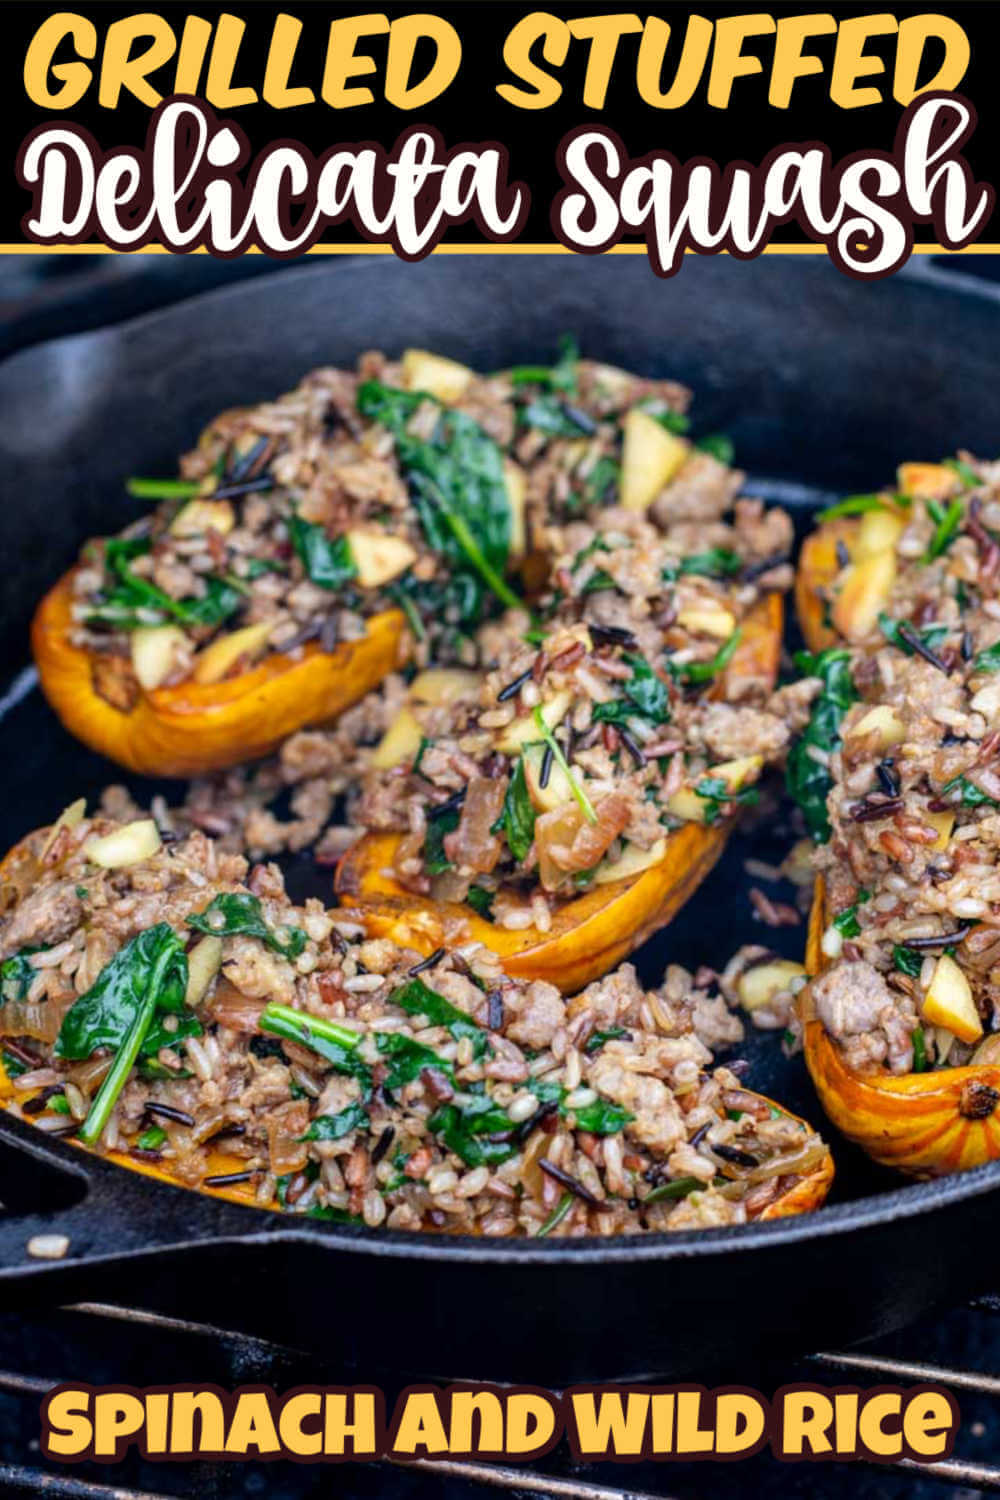 Grilled Wild Rice Stuffed Delicata Squash